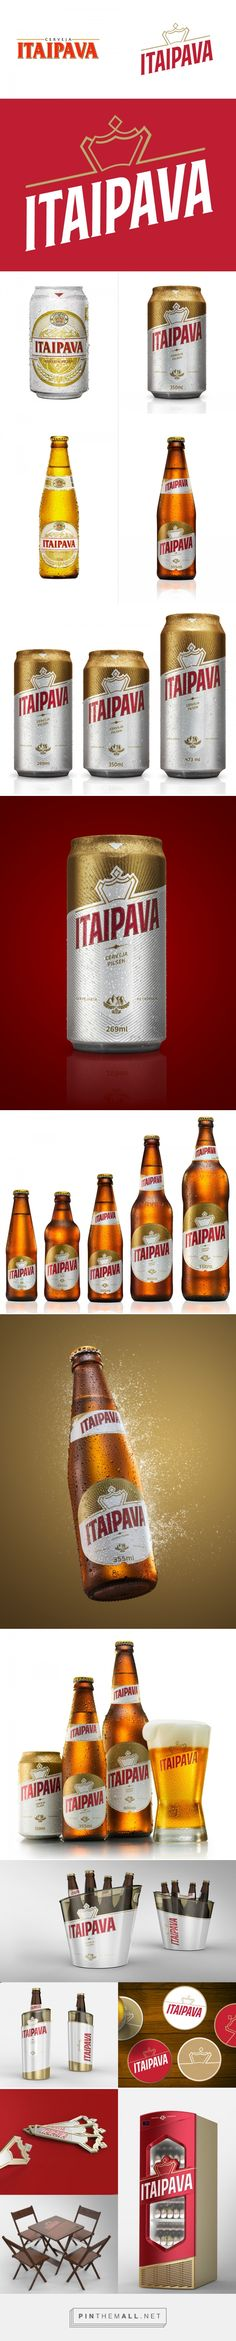 New Logo and Packaging for Itaipava by Futurebrand